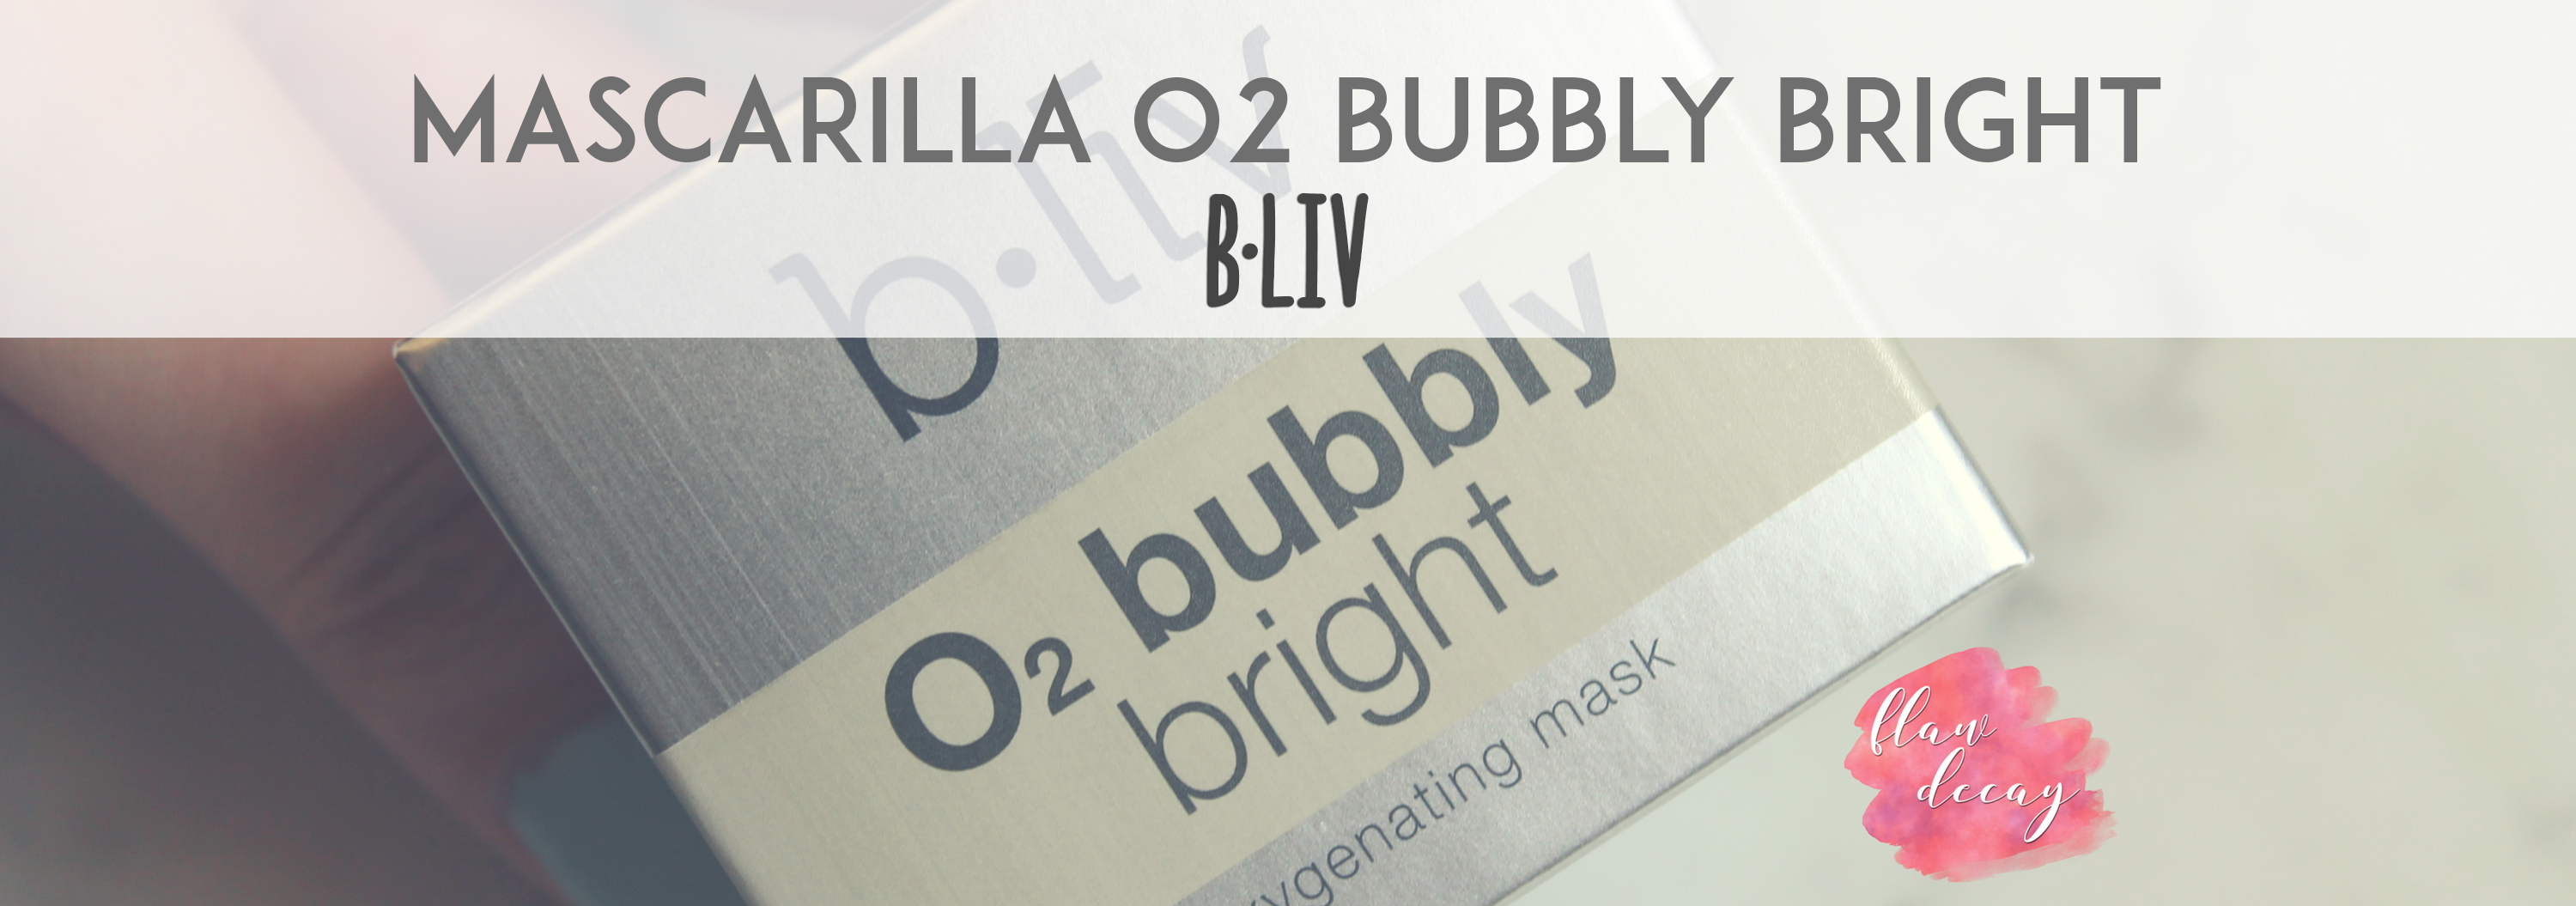 Mascarilla O2 Bubbly Bright (b.liv)